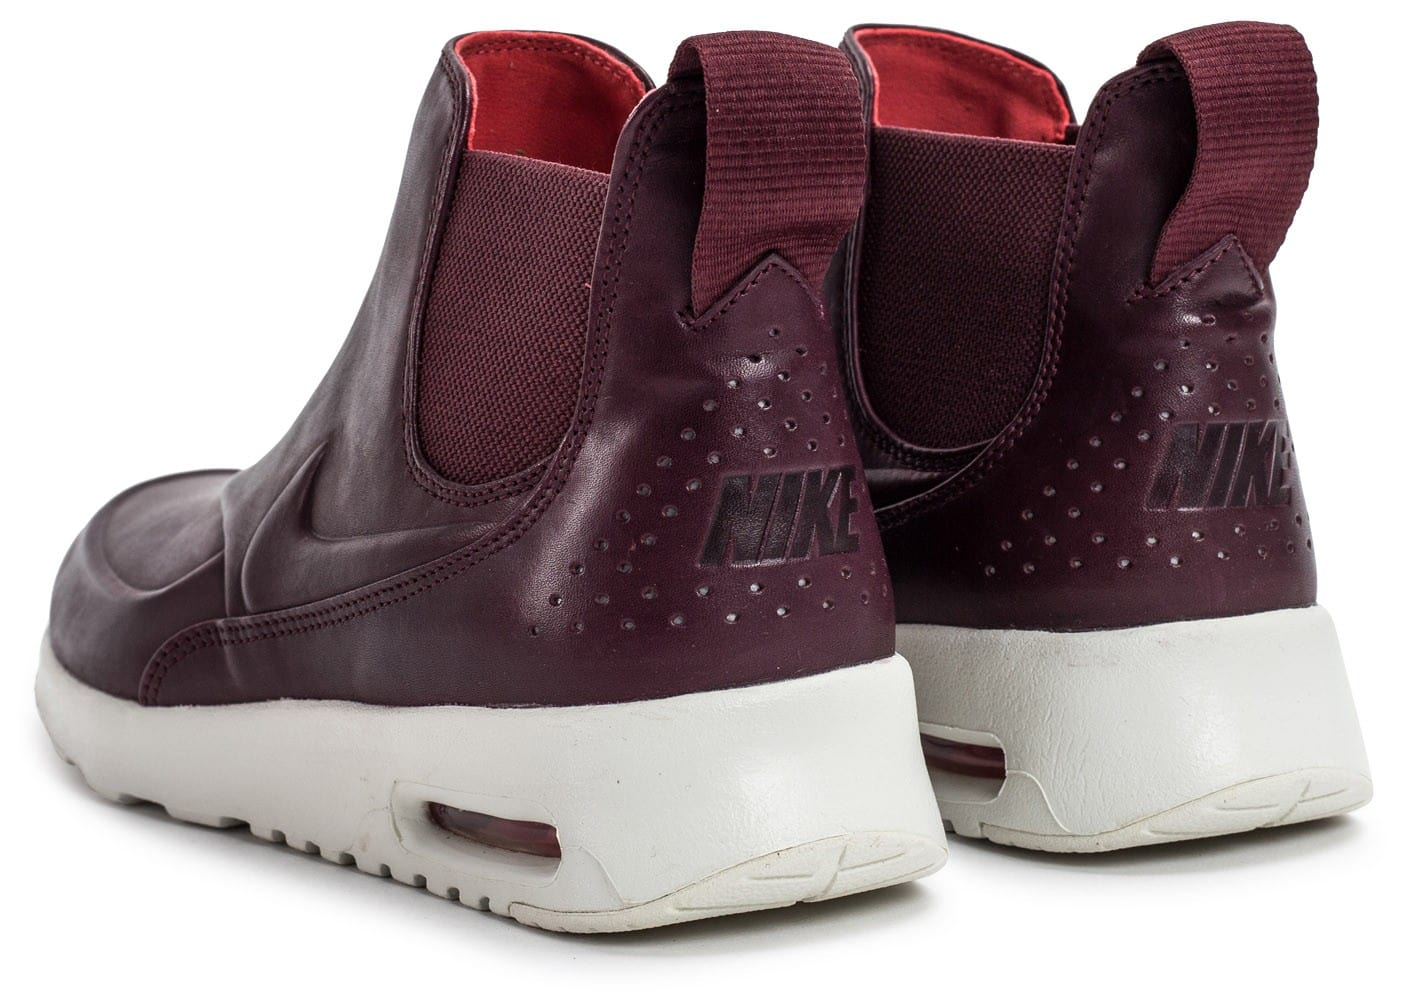 good selling amazing price nice shoes Nike Air Max Thea Mid bordeaux - Chaussures Baskets femme - Chausport